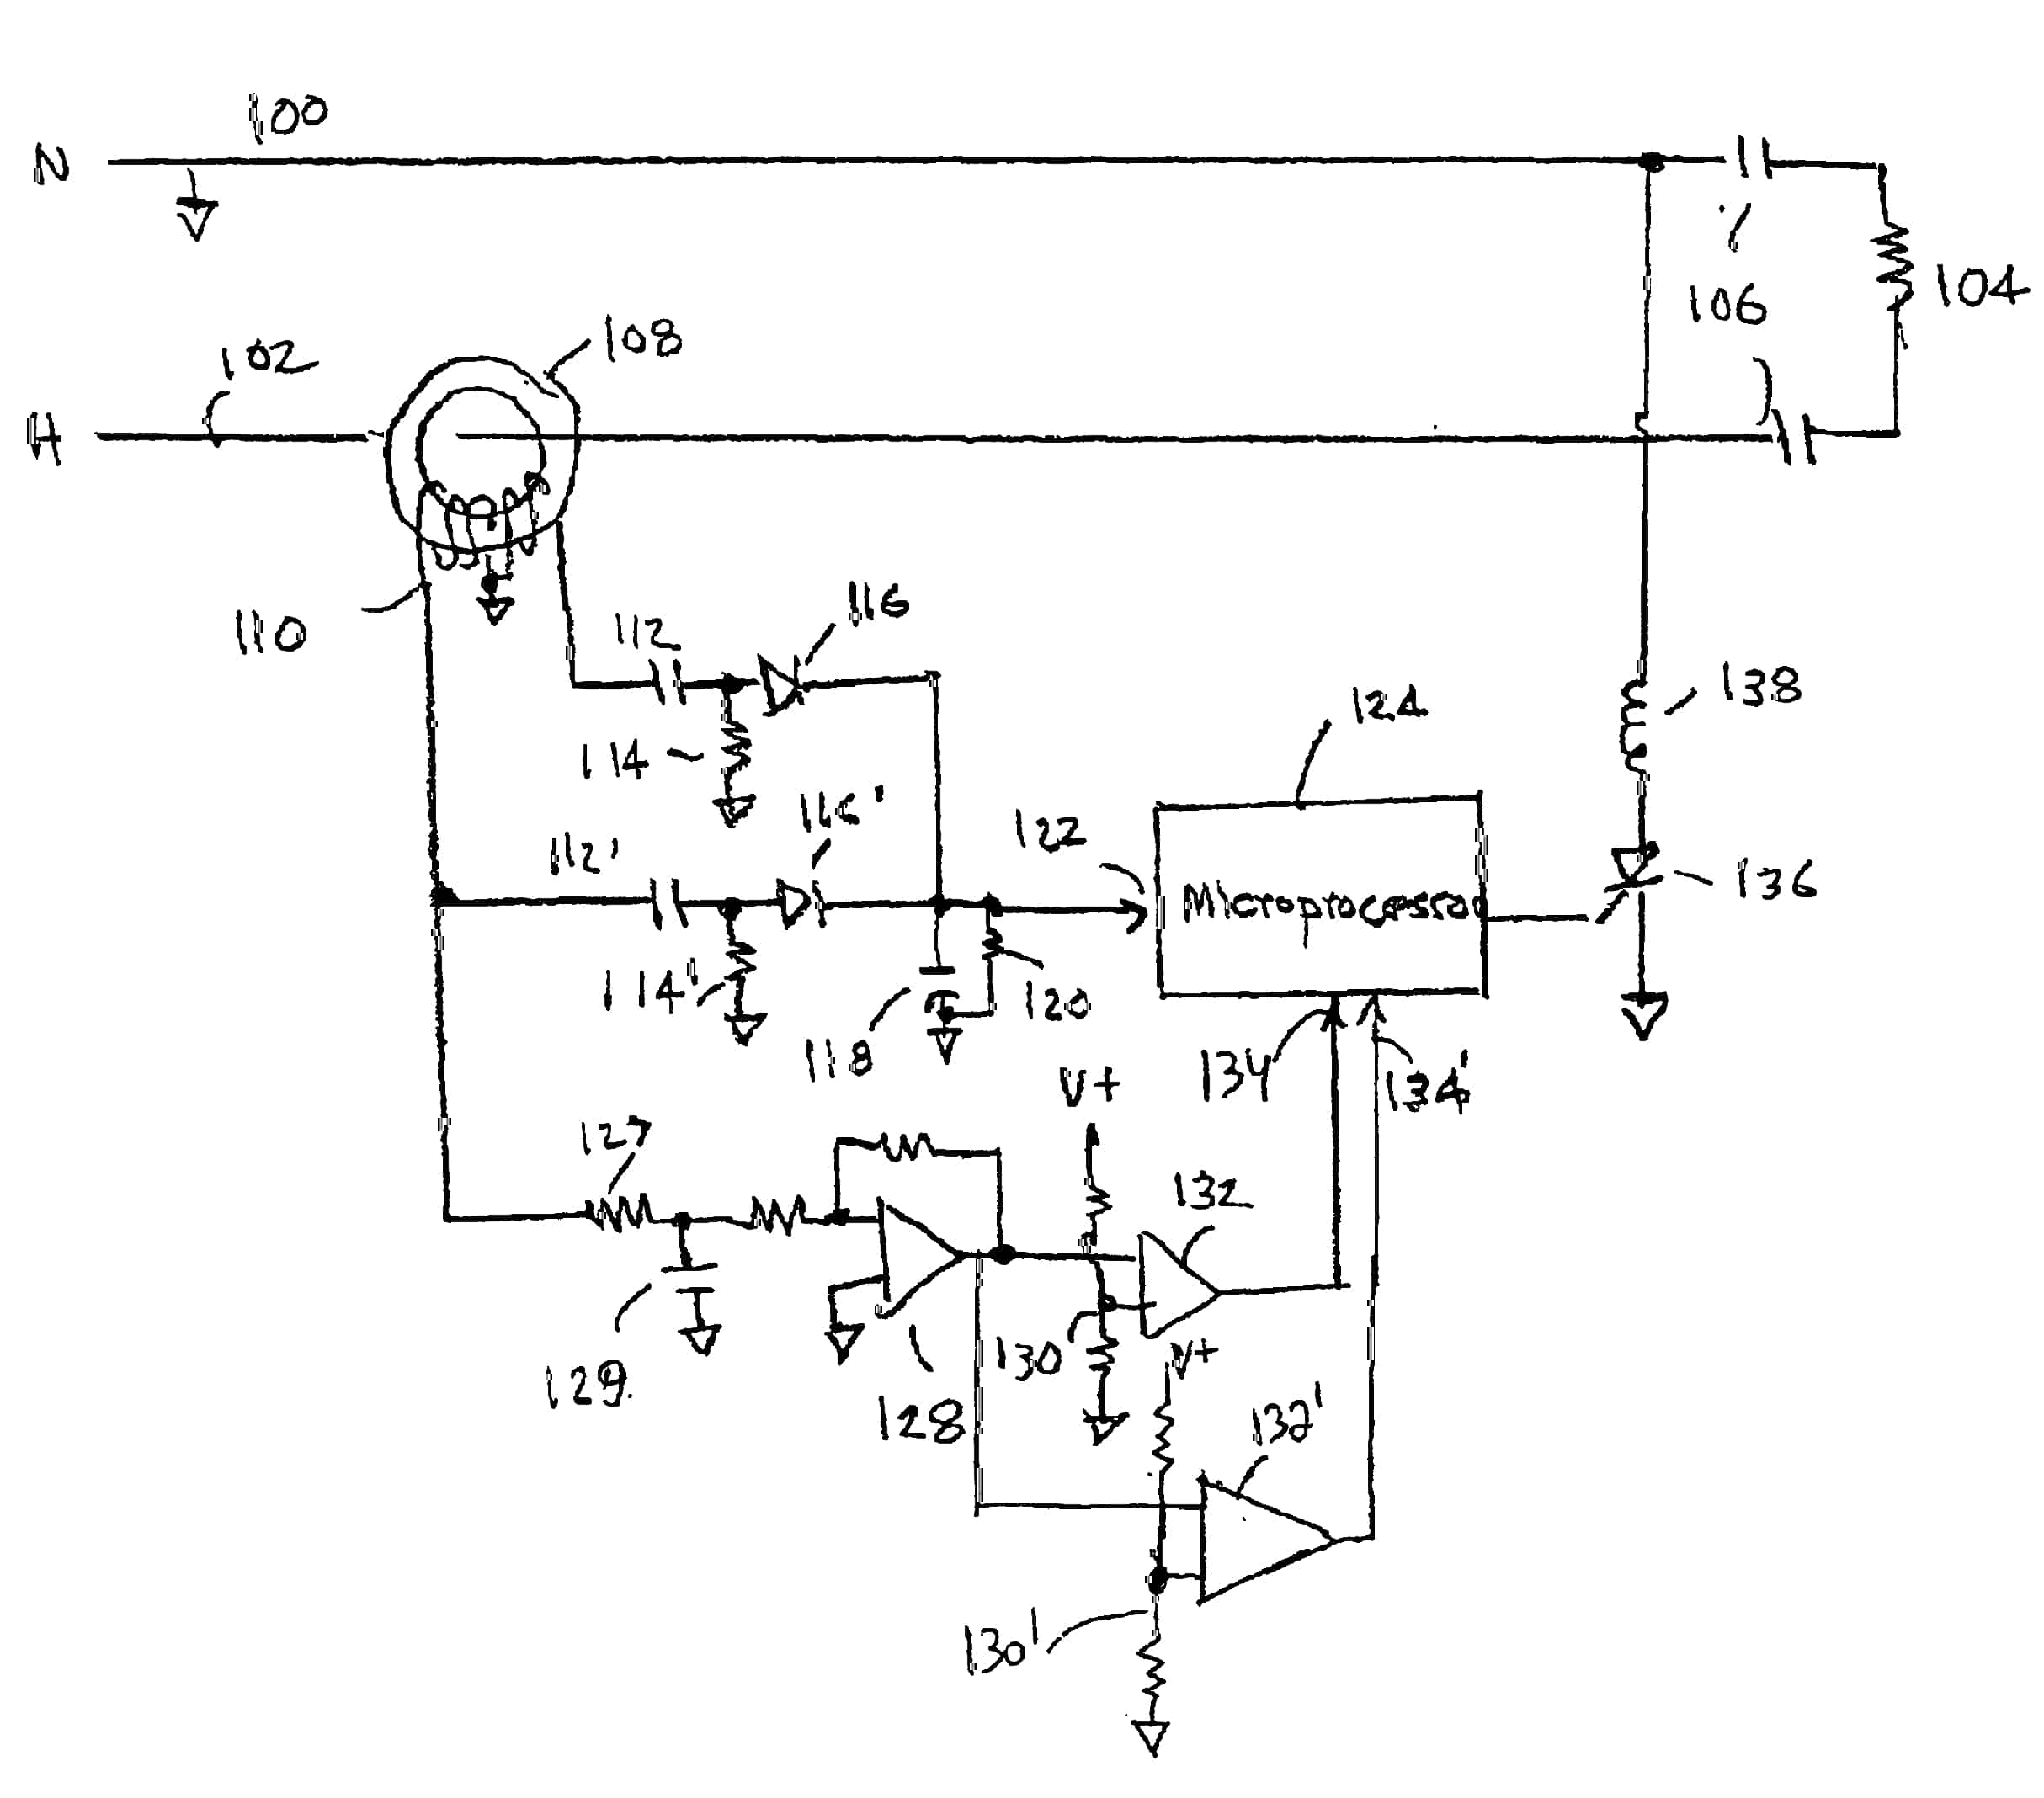 arc fault circuit breaker williams electric 510 339 5601 oakland arc fault circuit interruptor diagram hand drawn showing diodes resistors micro processor current